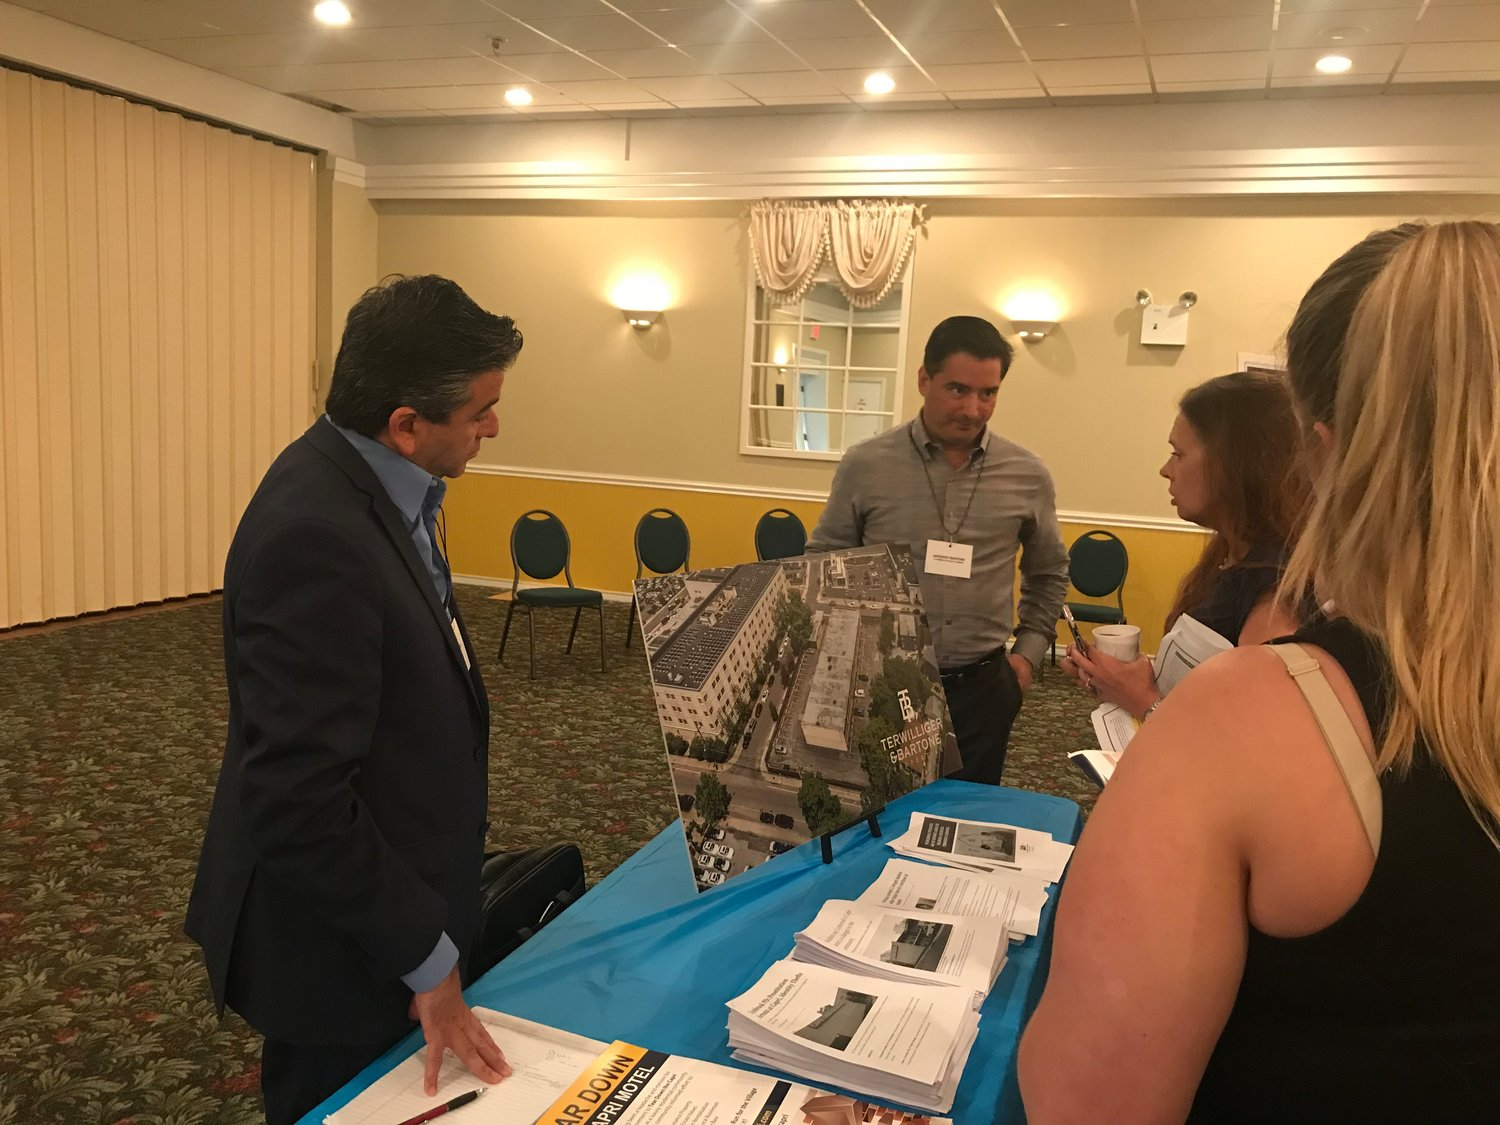 Developer Anthony Bartone, center, met with residents at an Aug. 20 open house to gather feedback about a potential rental apartment complex that he said he hoped to build at the site of the Capri Lynbrook Motor Inn.